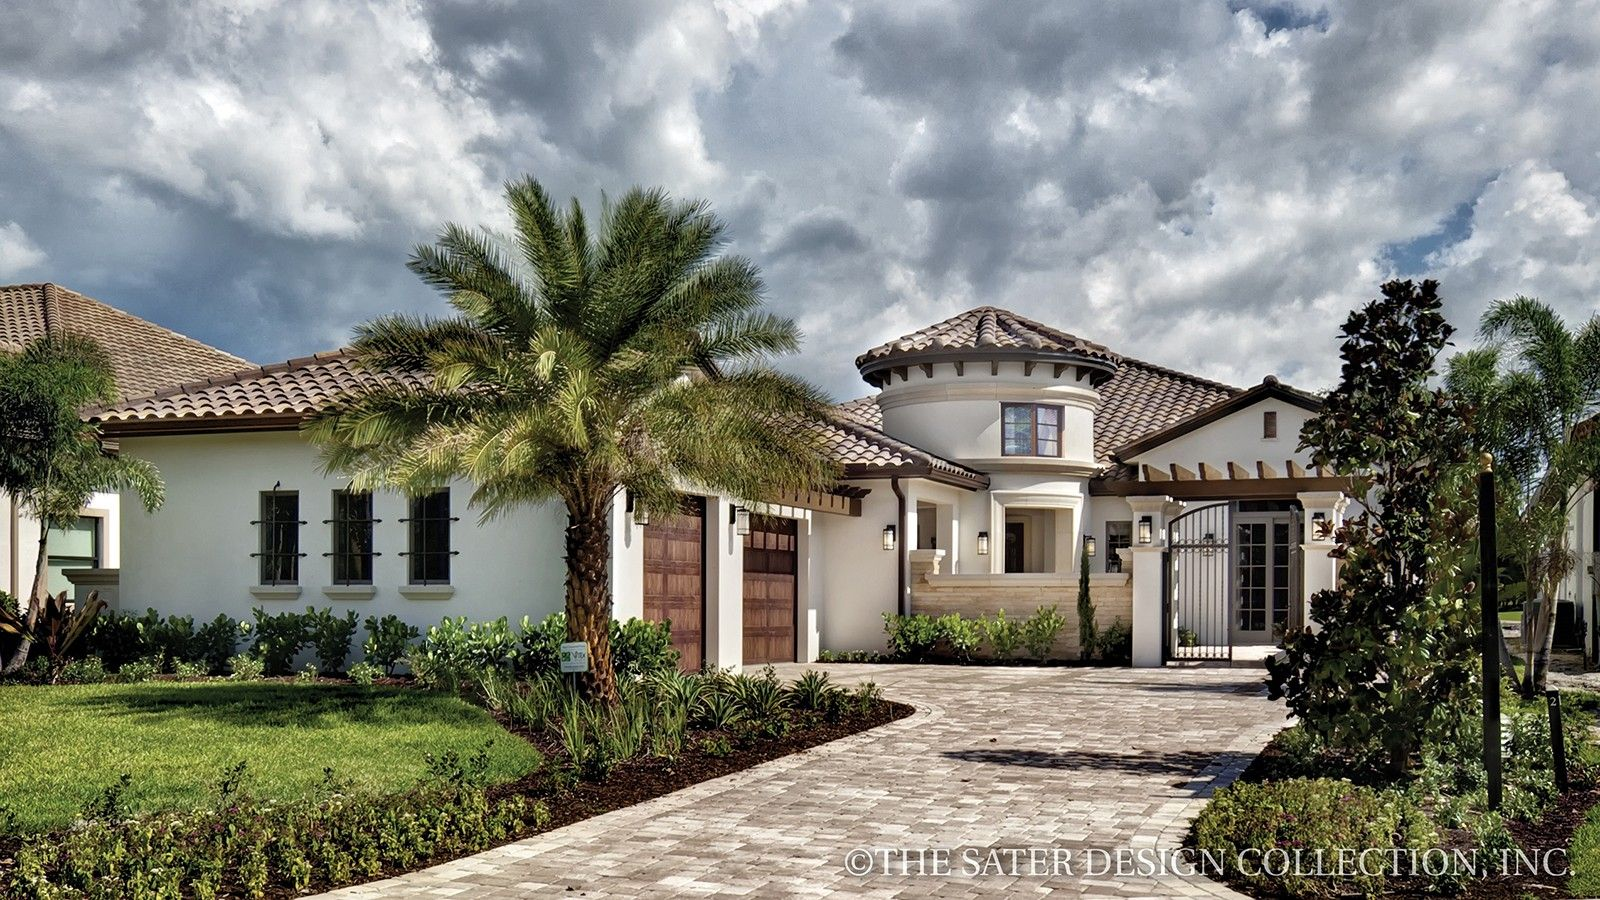 Sater Design Collection House Plans And Home Designs By Dan Sater On